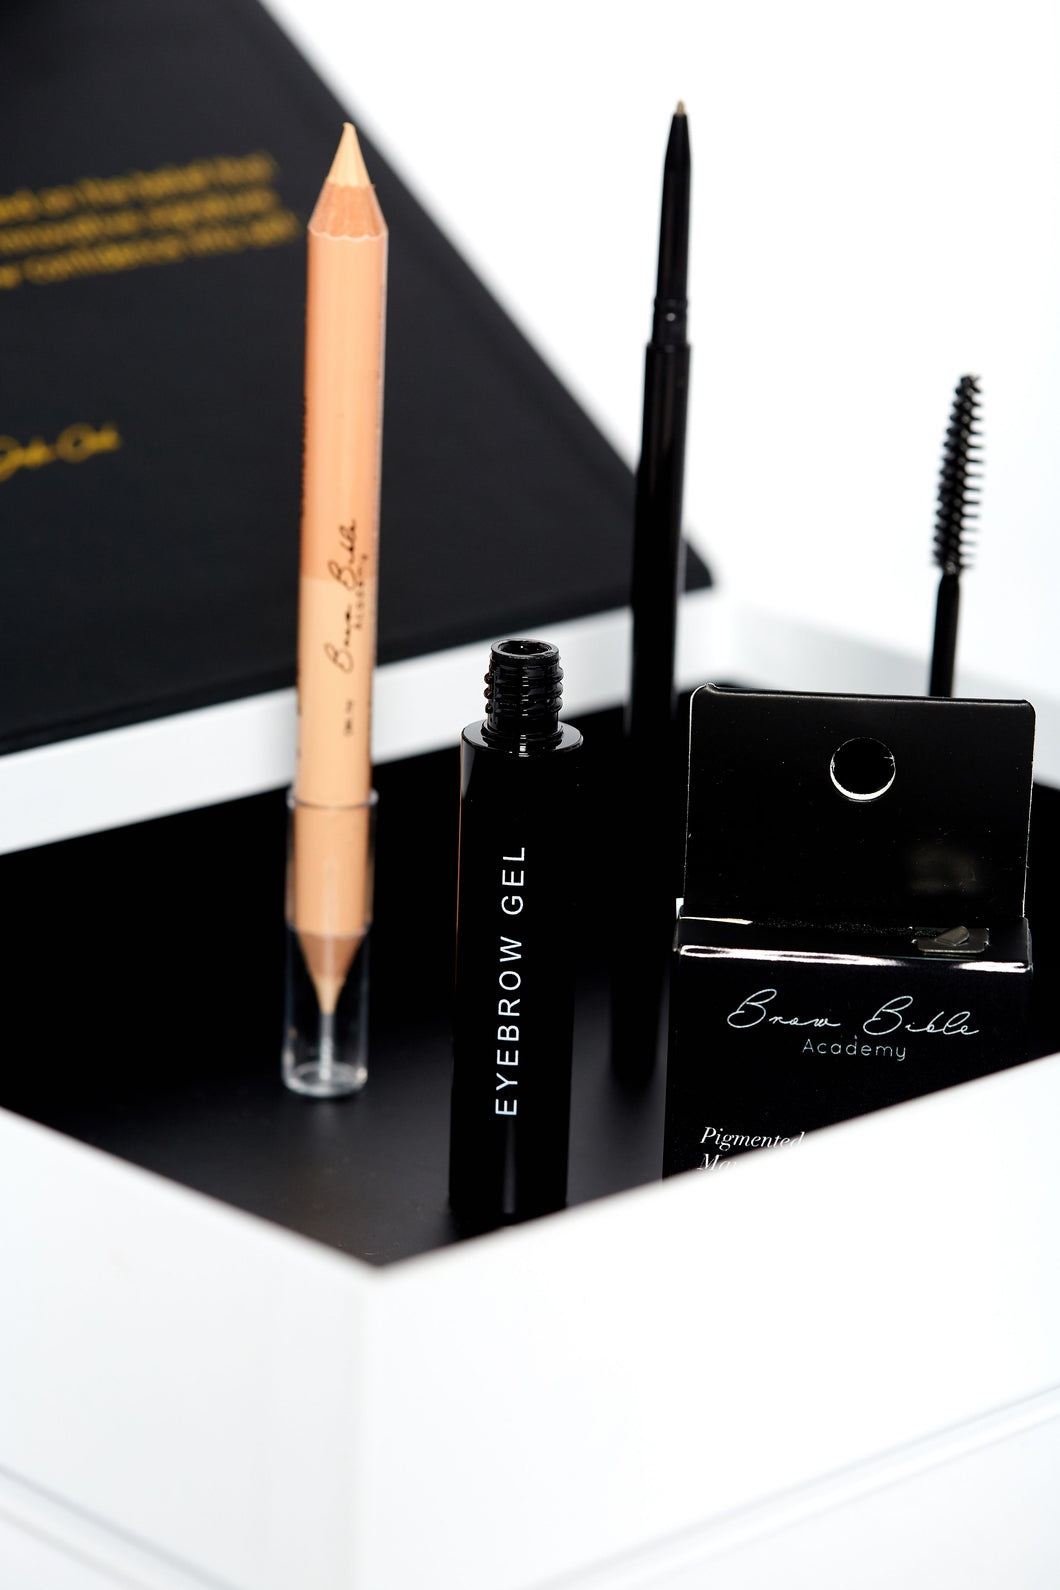 The Essential Brow Henna Kit